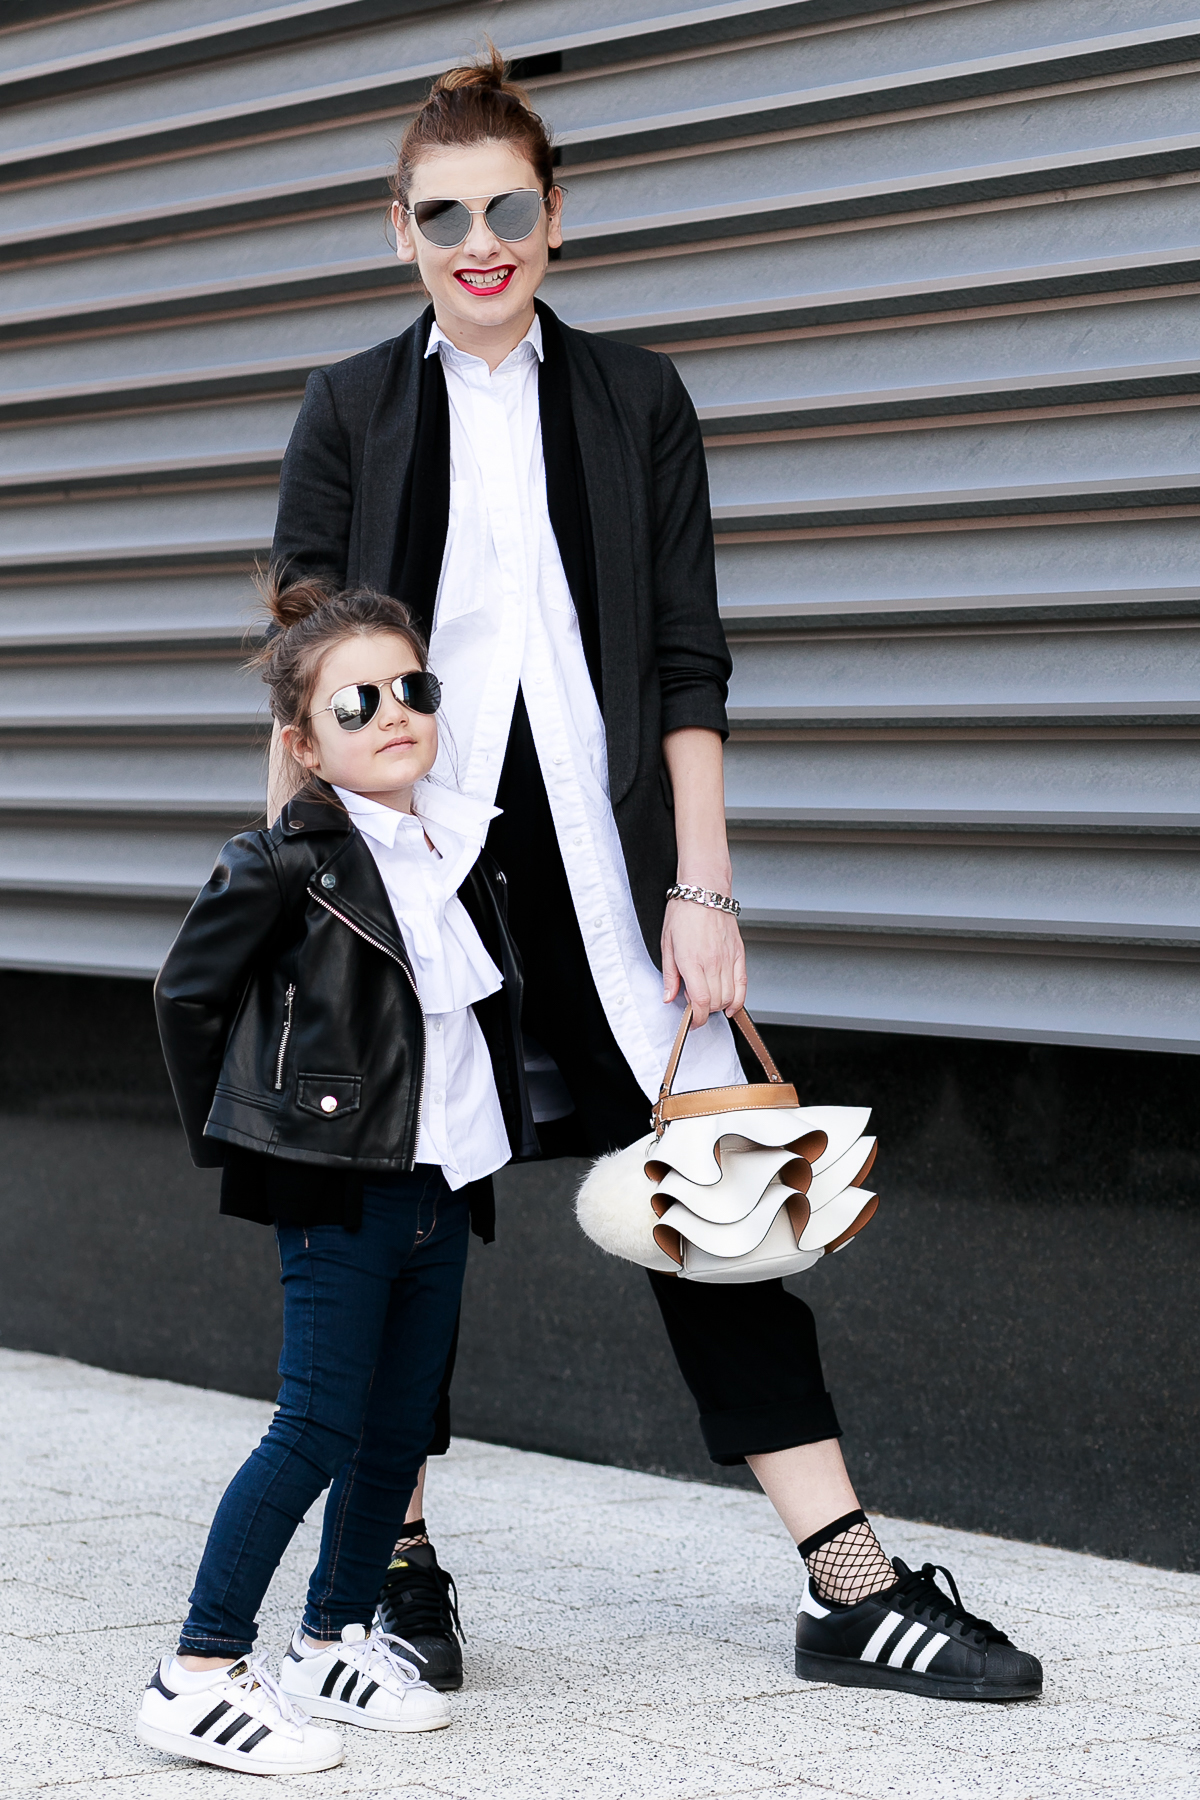 How To Wear Fishnet Socks | Mother - Daughter Mommy and Me Outfit Mini Me Street Style in Monochrome | EdgyCuts